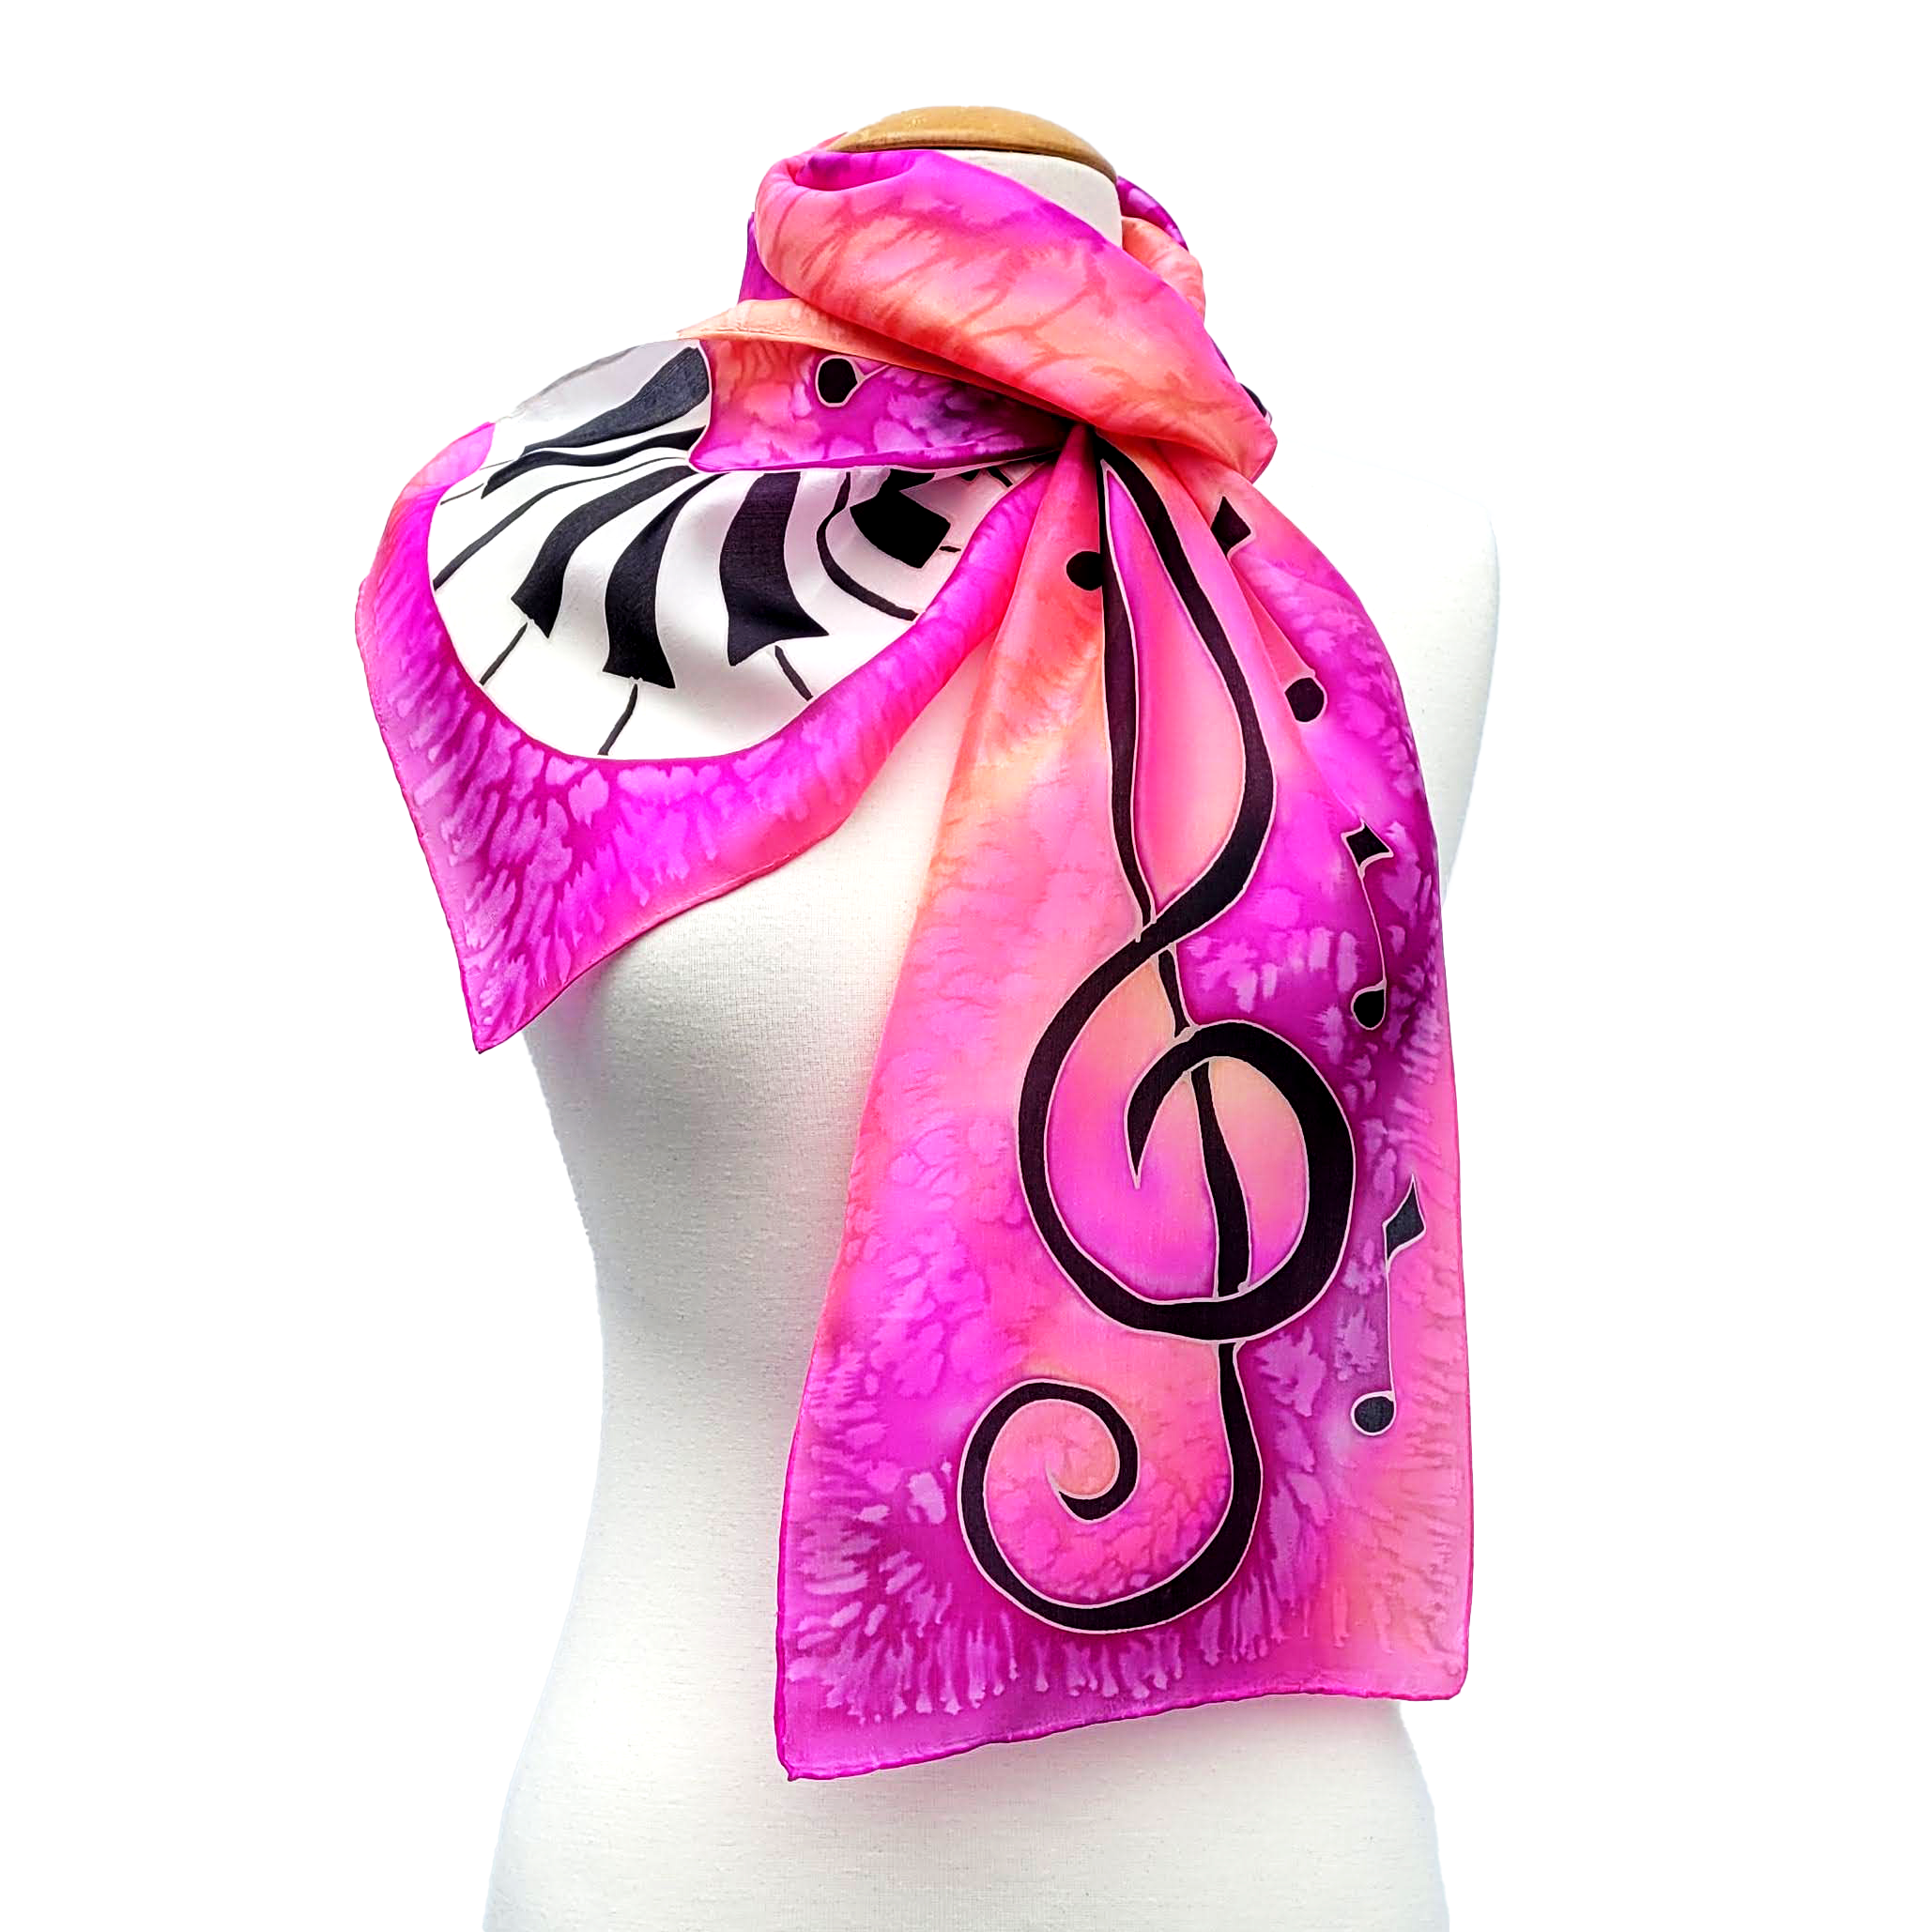 hand painted silk scarf pink piano design art made by Lynne Kiel